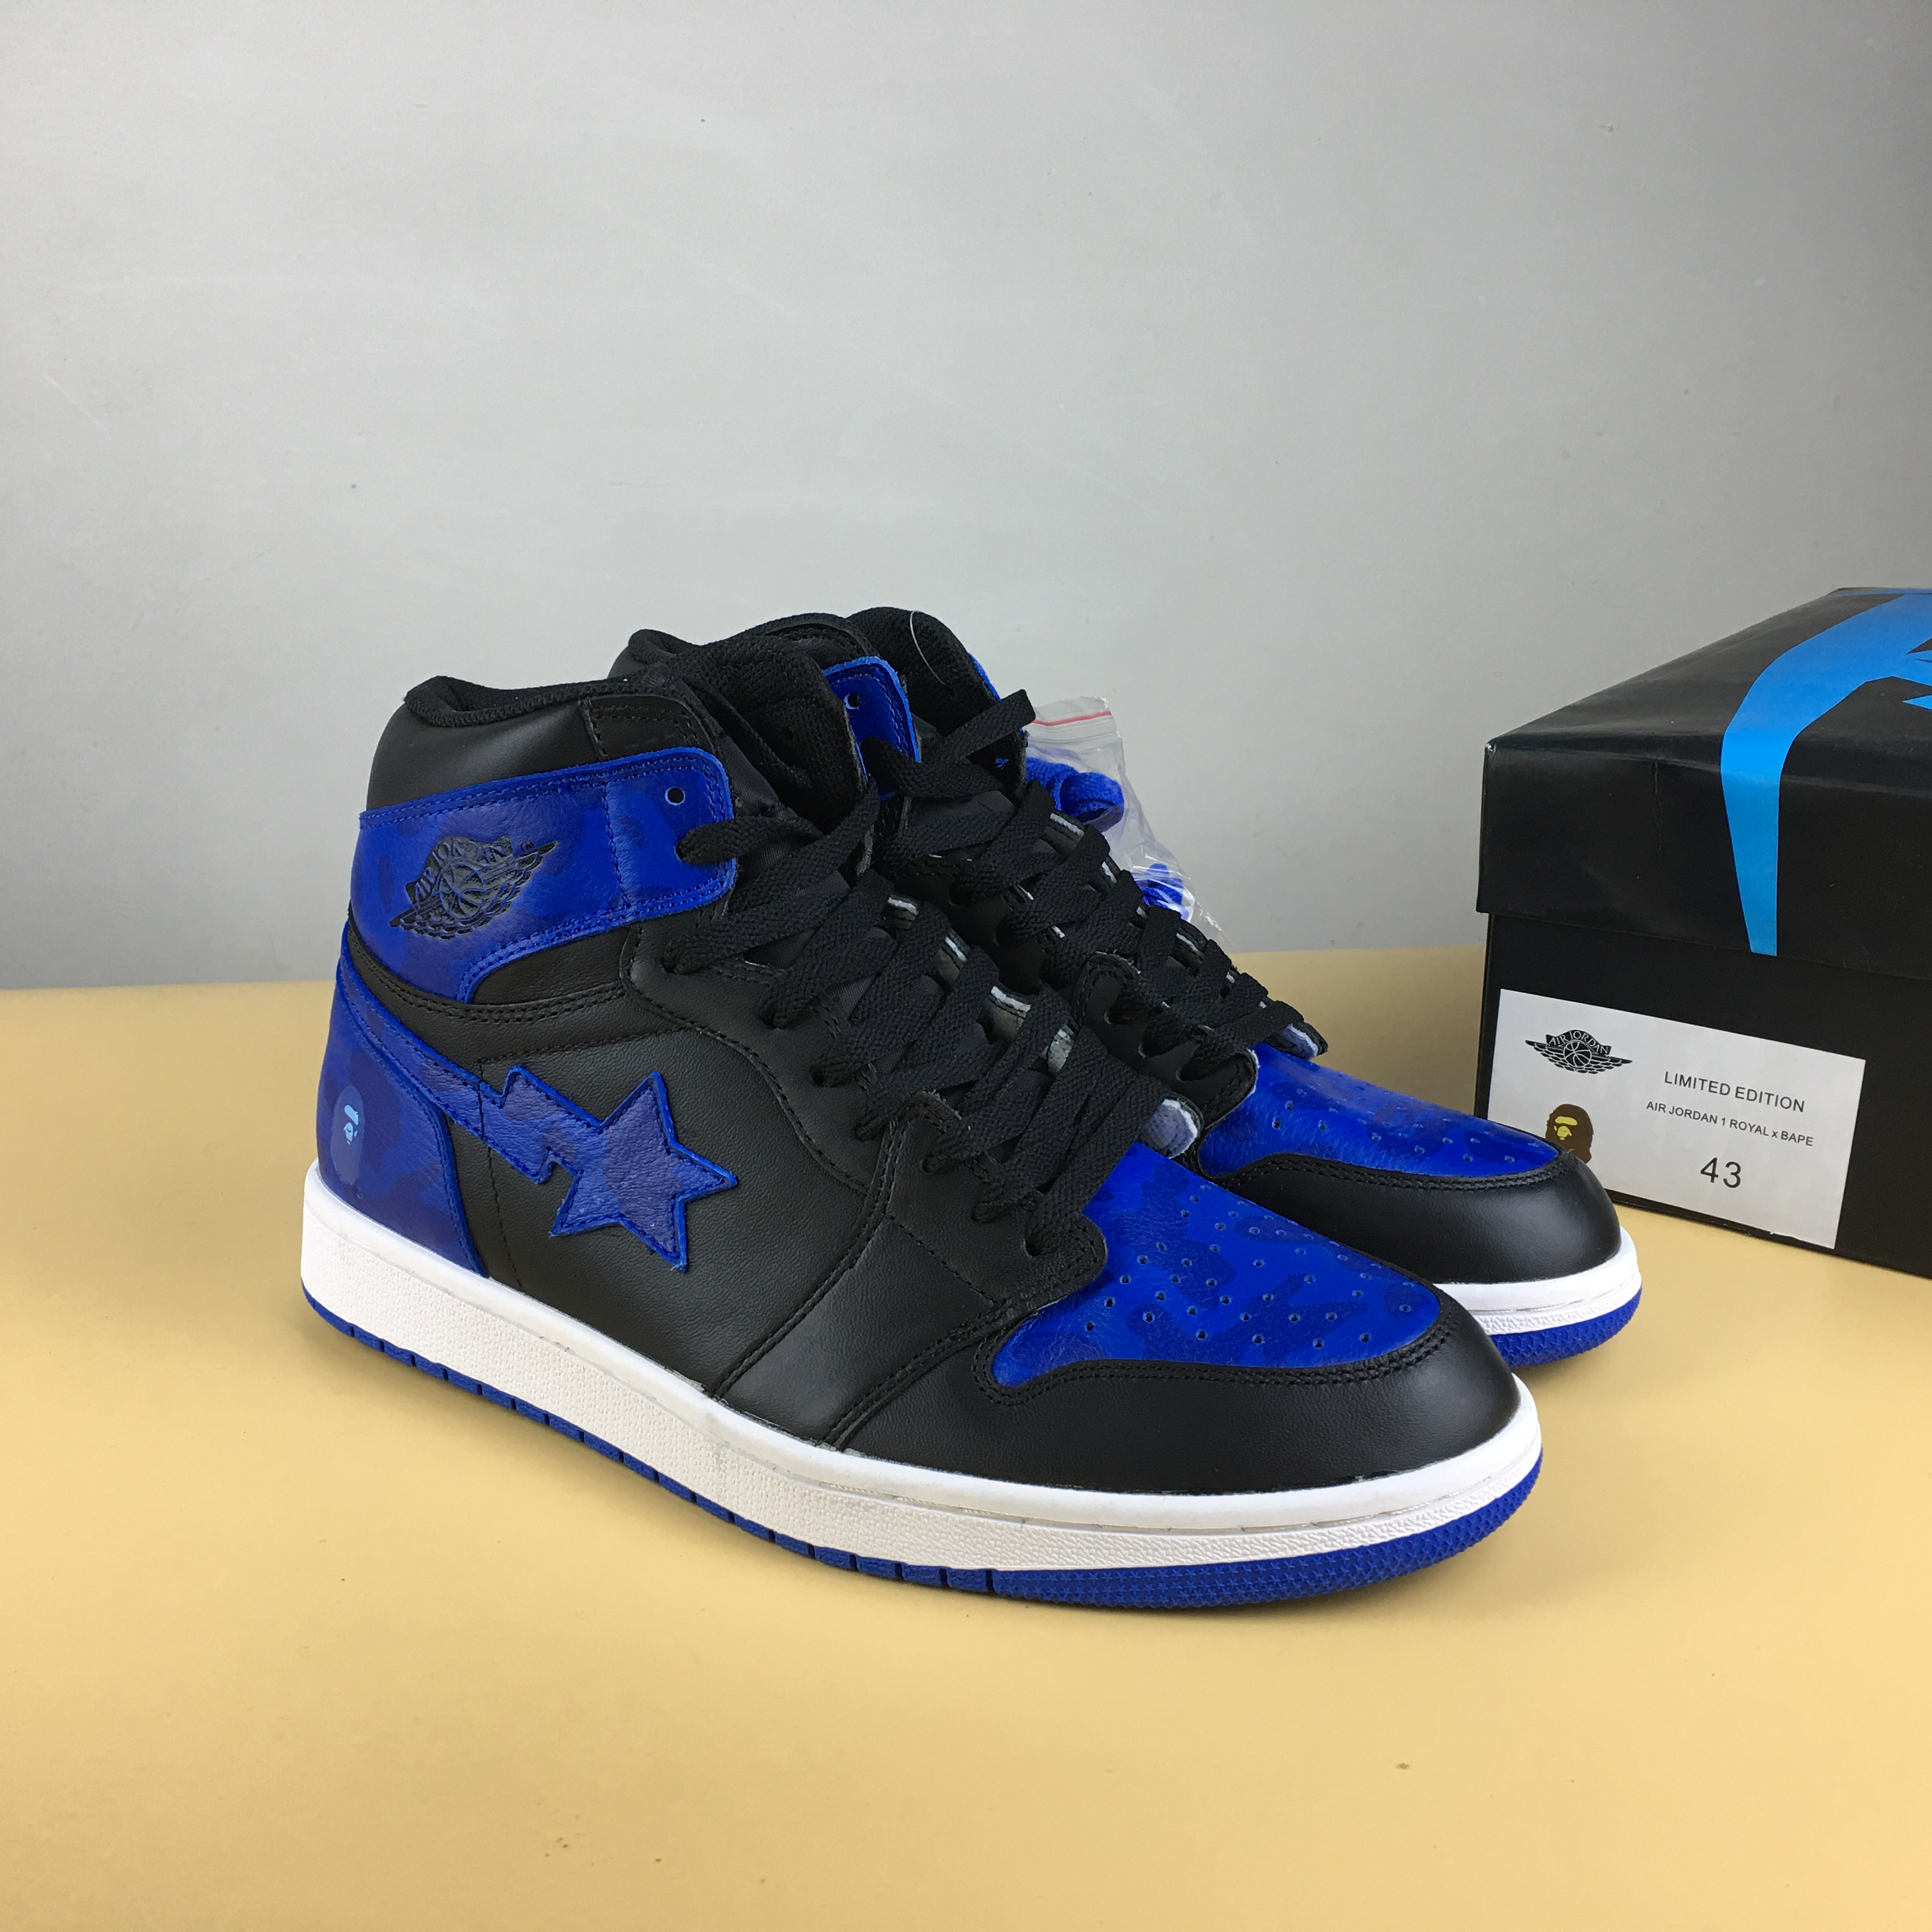 BAPE x Air Jordan 1 Black Royal Blue Shoes